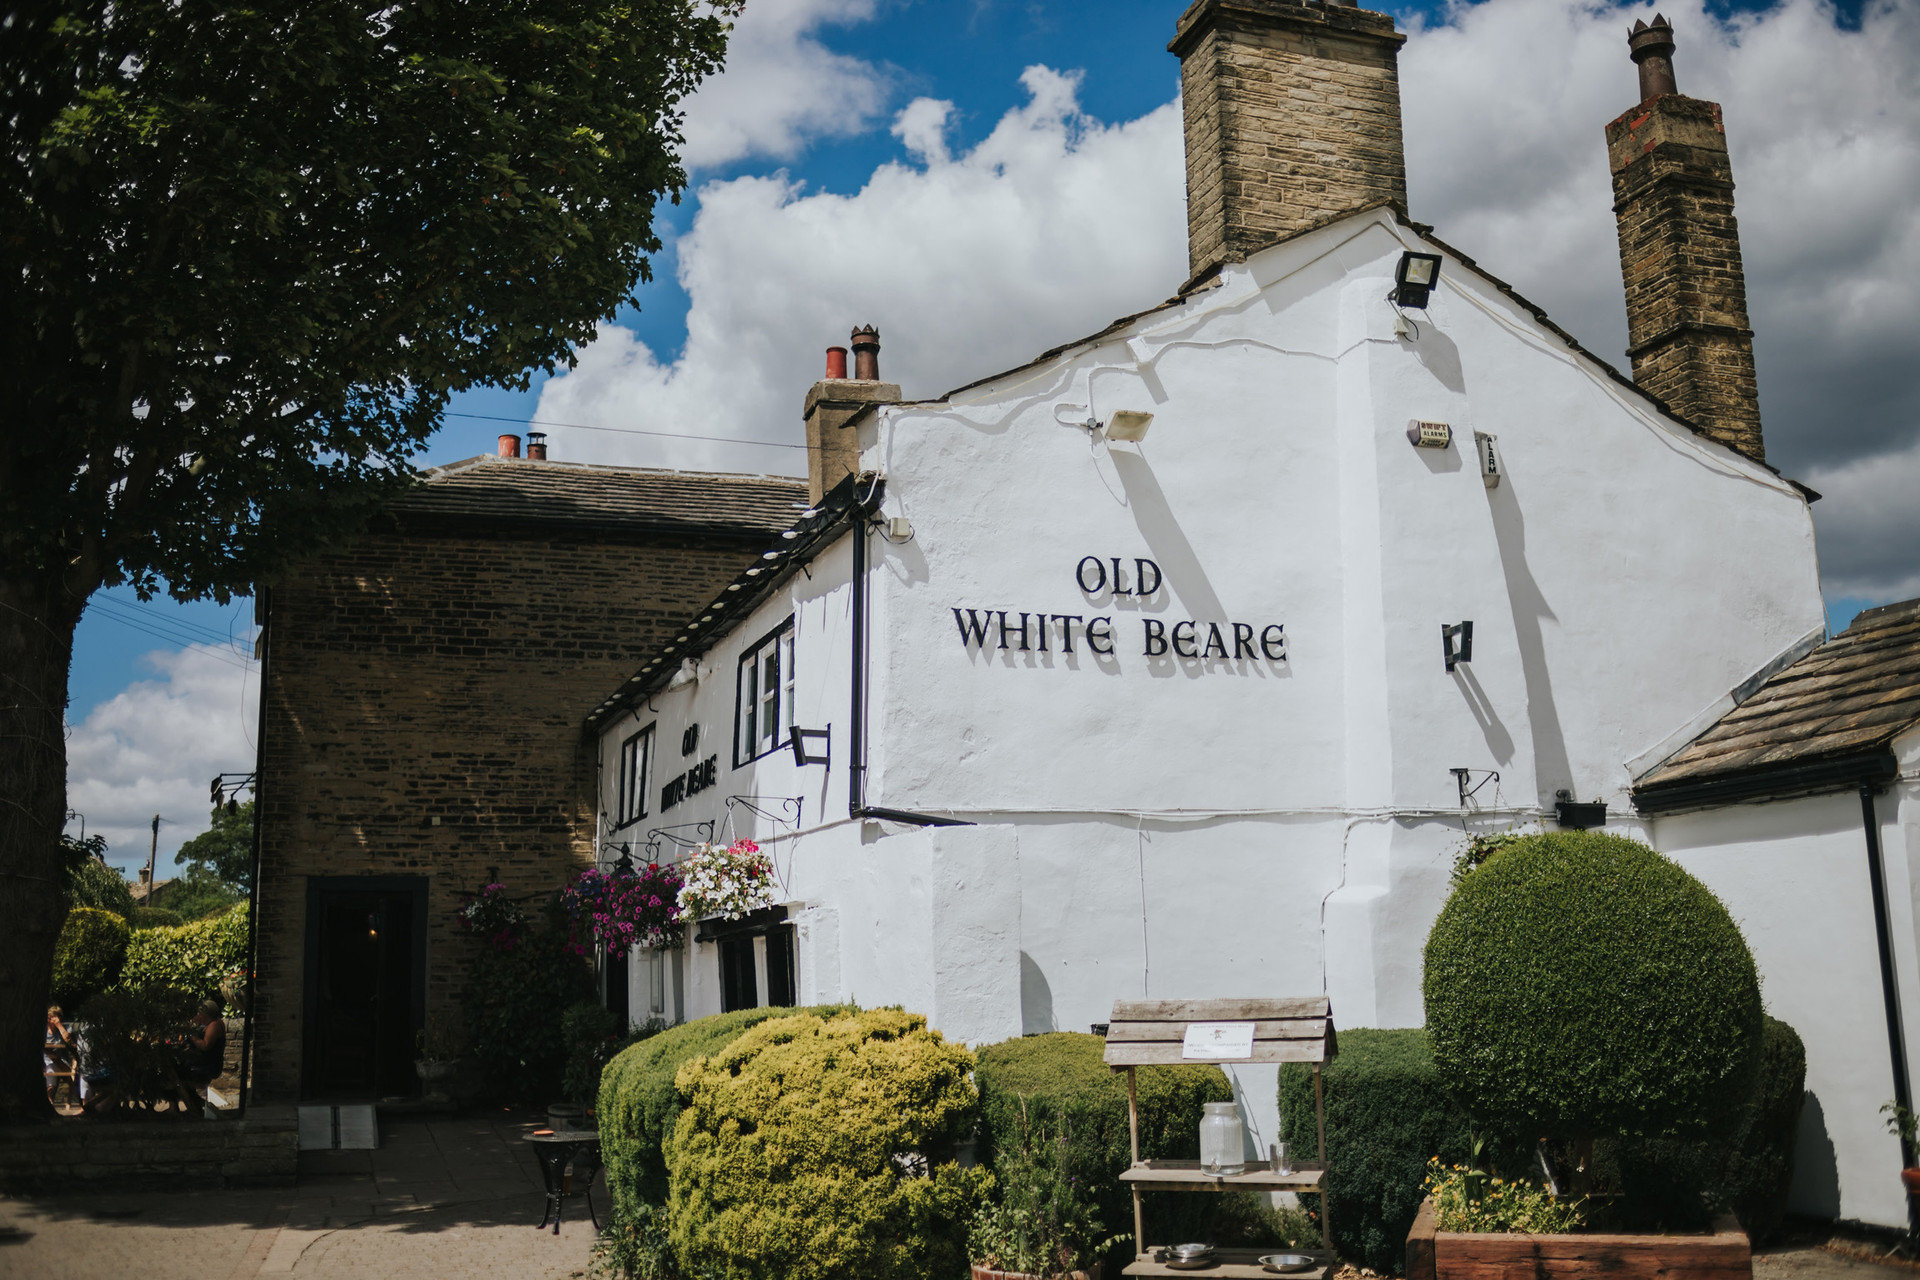 The Old White Beare pub in Norwood Green, Halifax